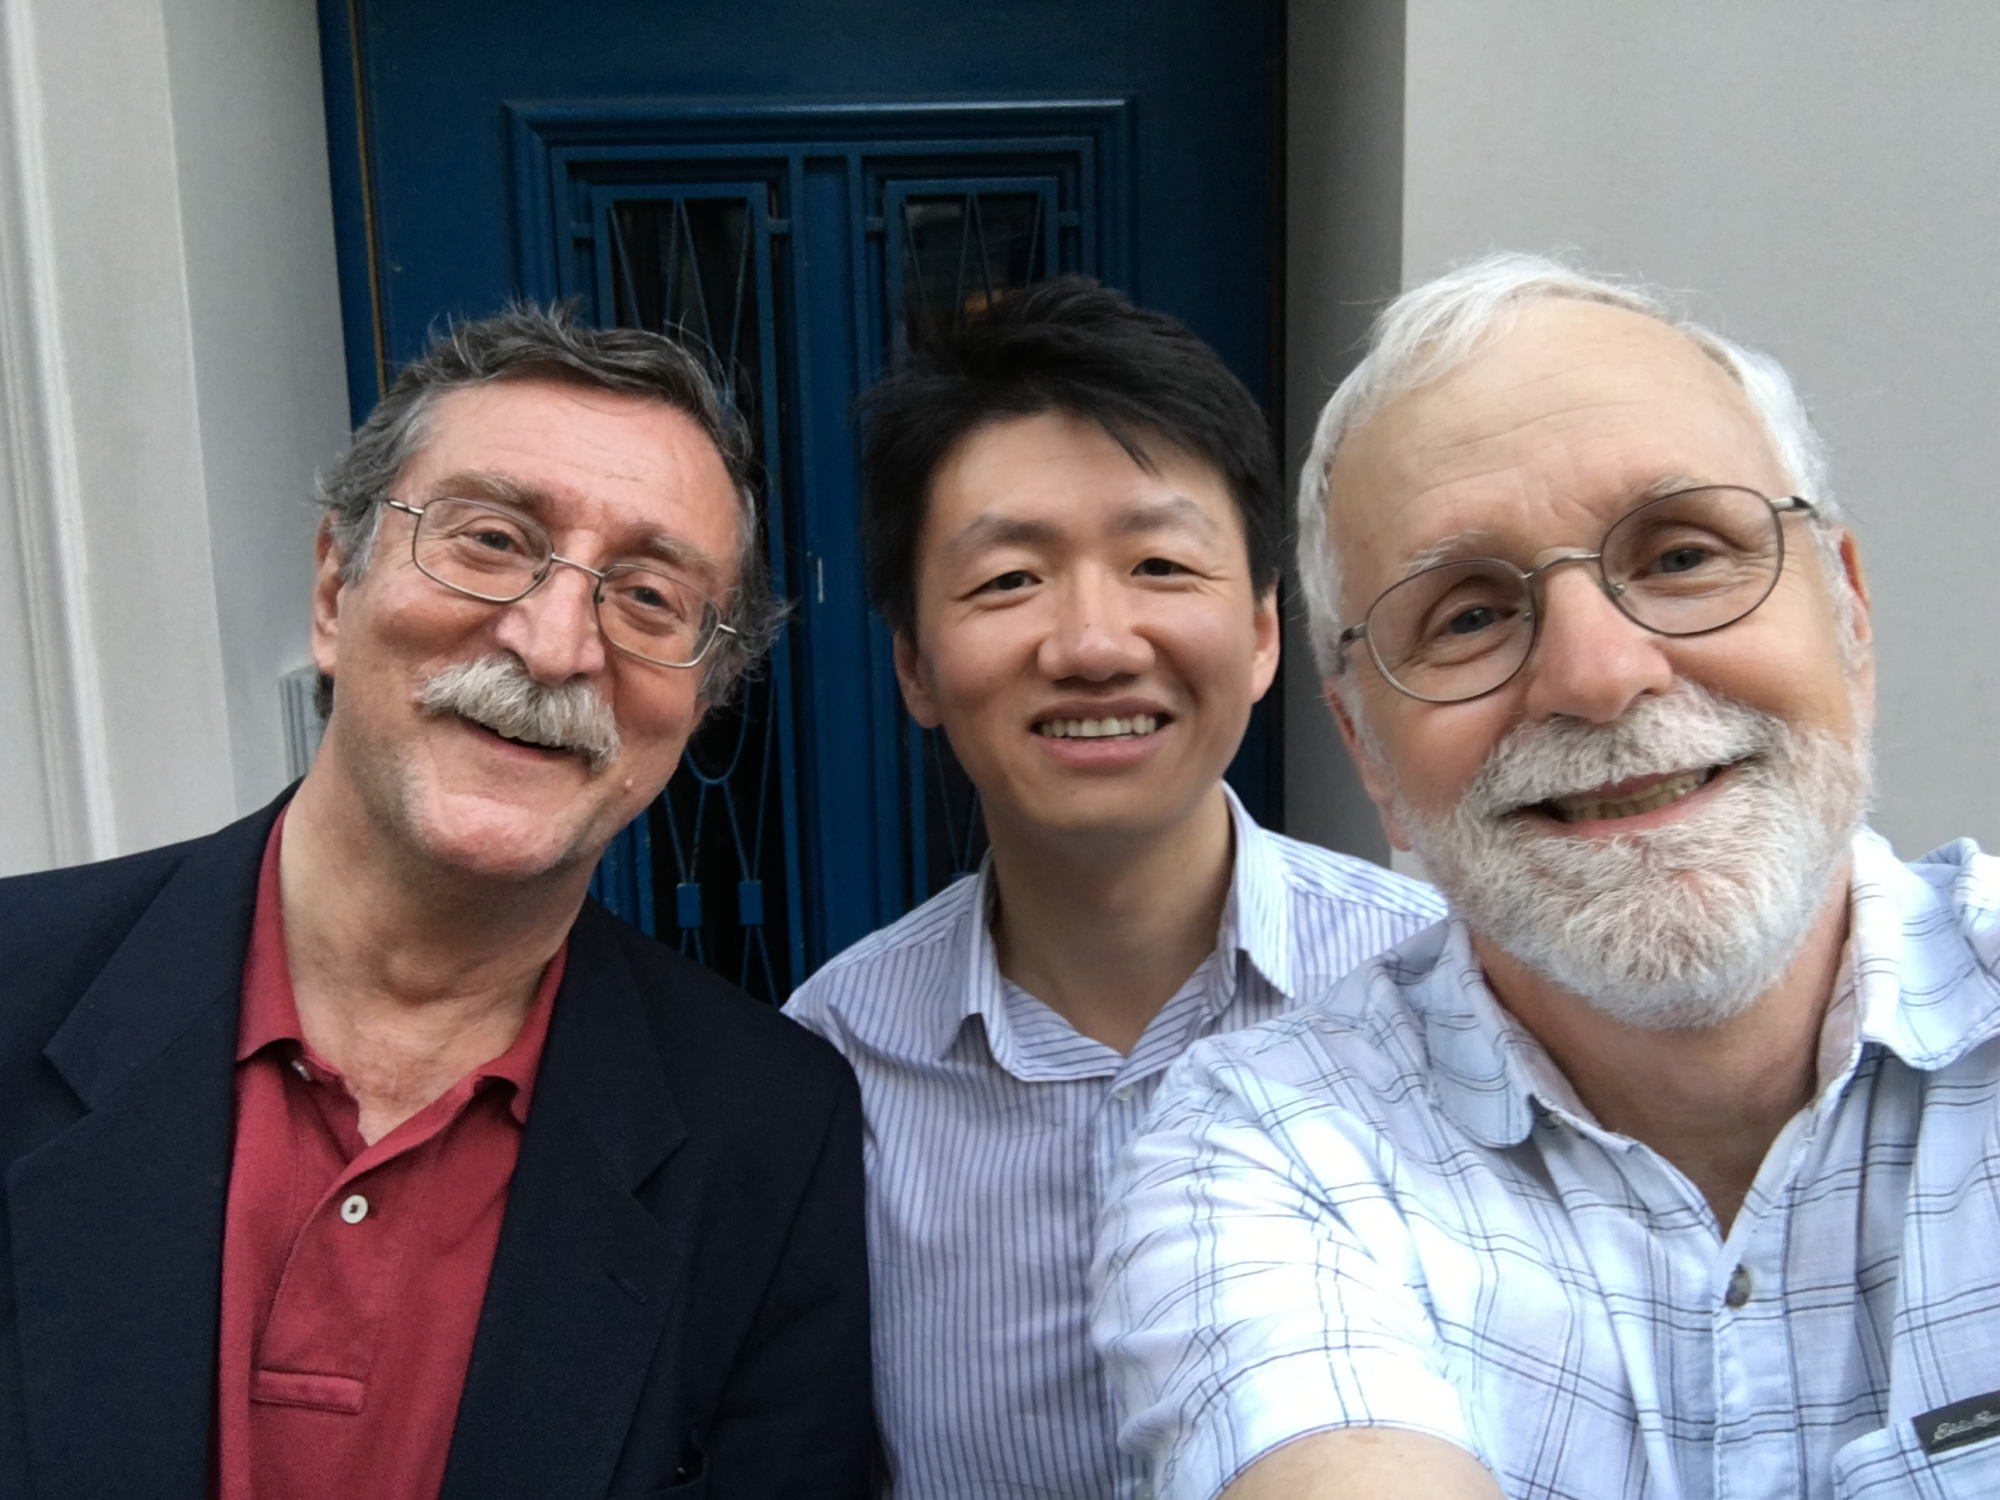 Ali, Zhizhong and me on our way to dinner.